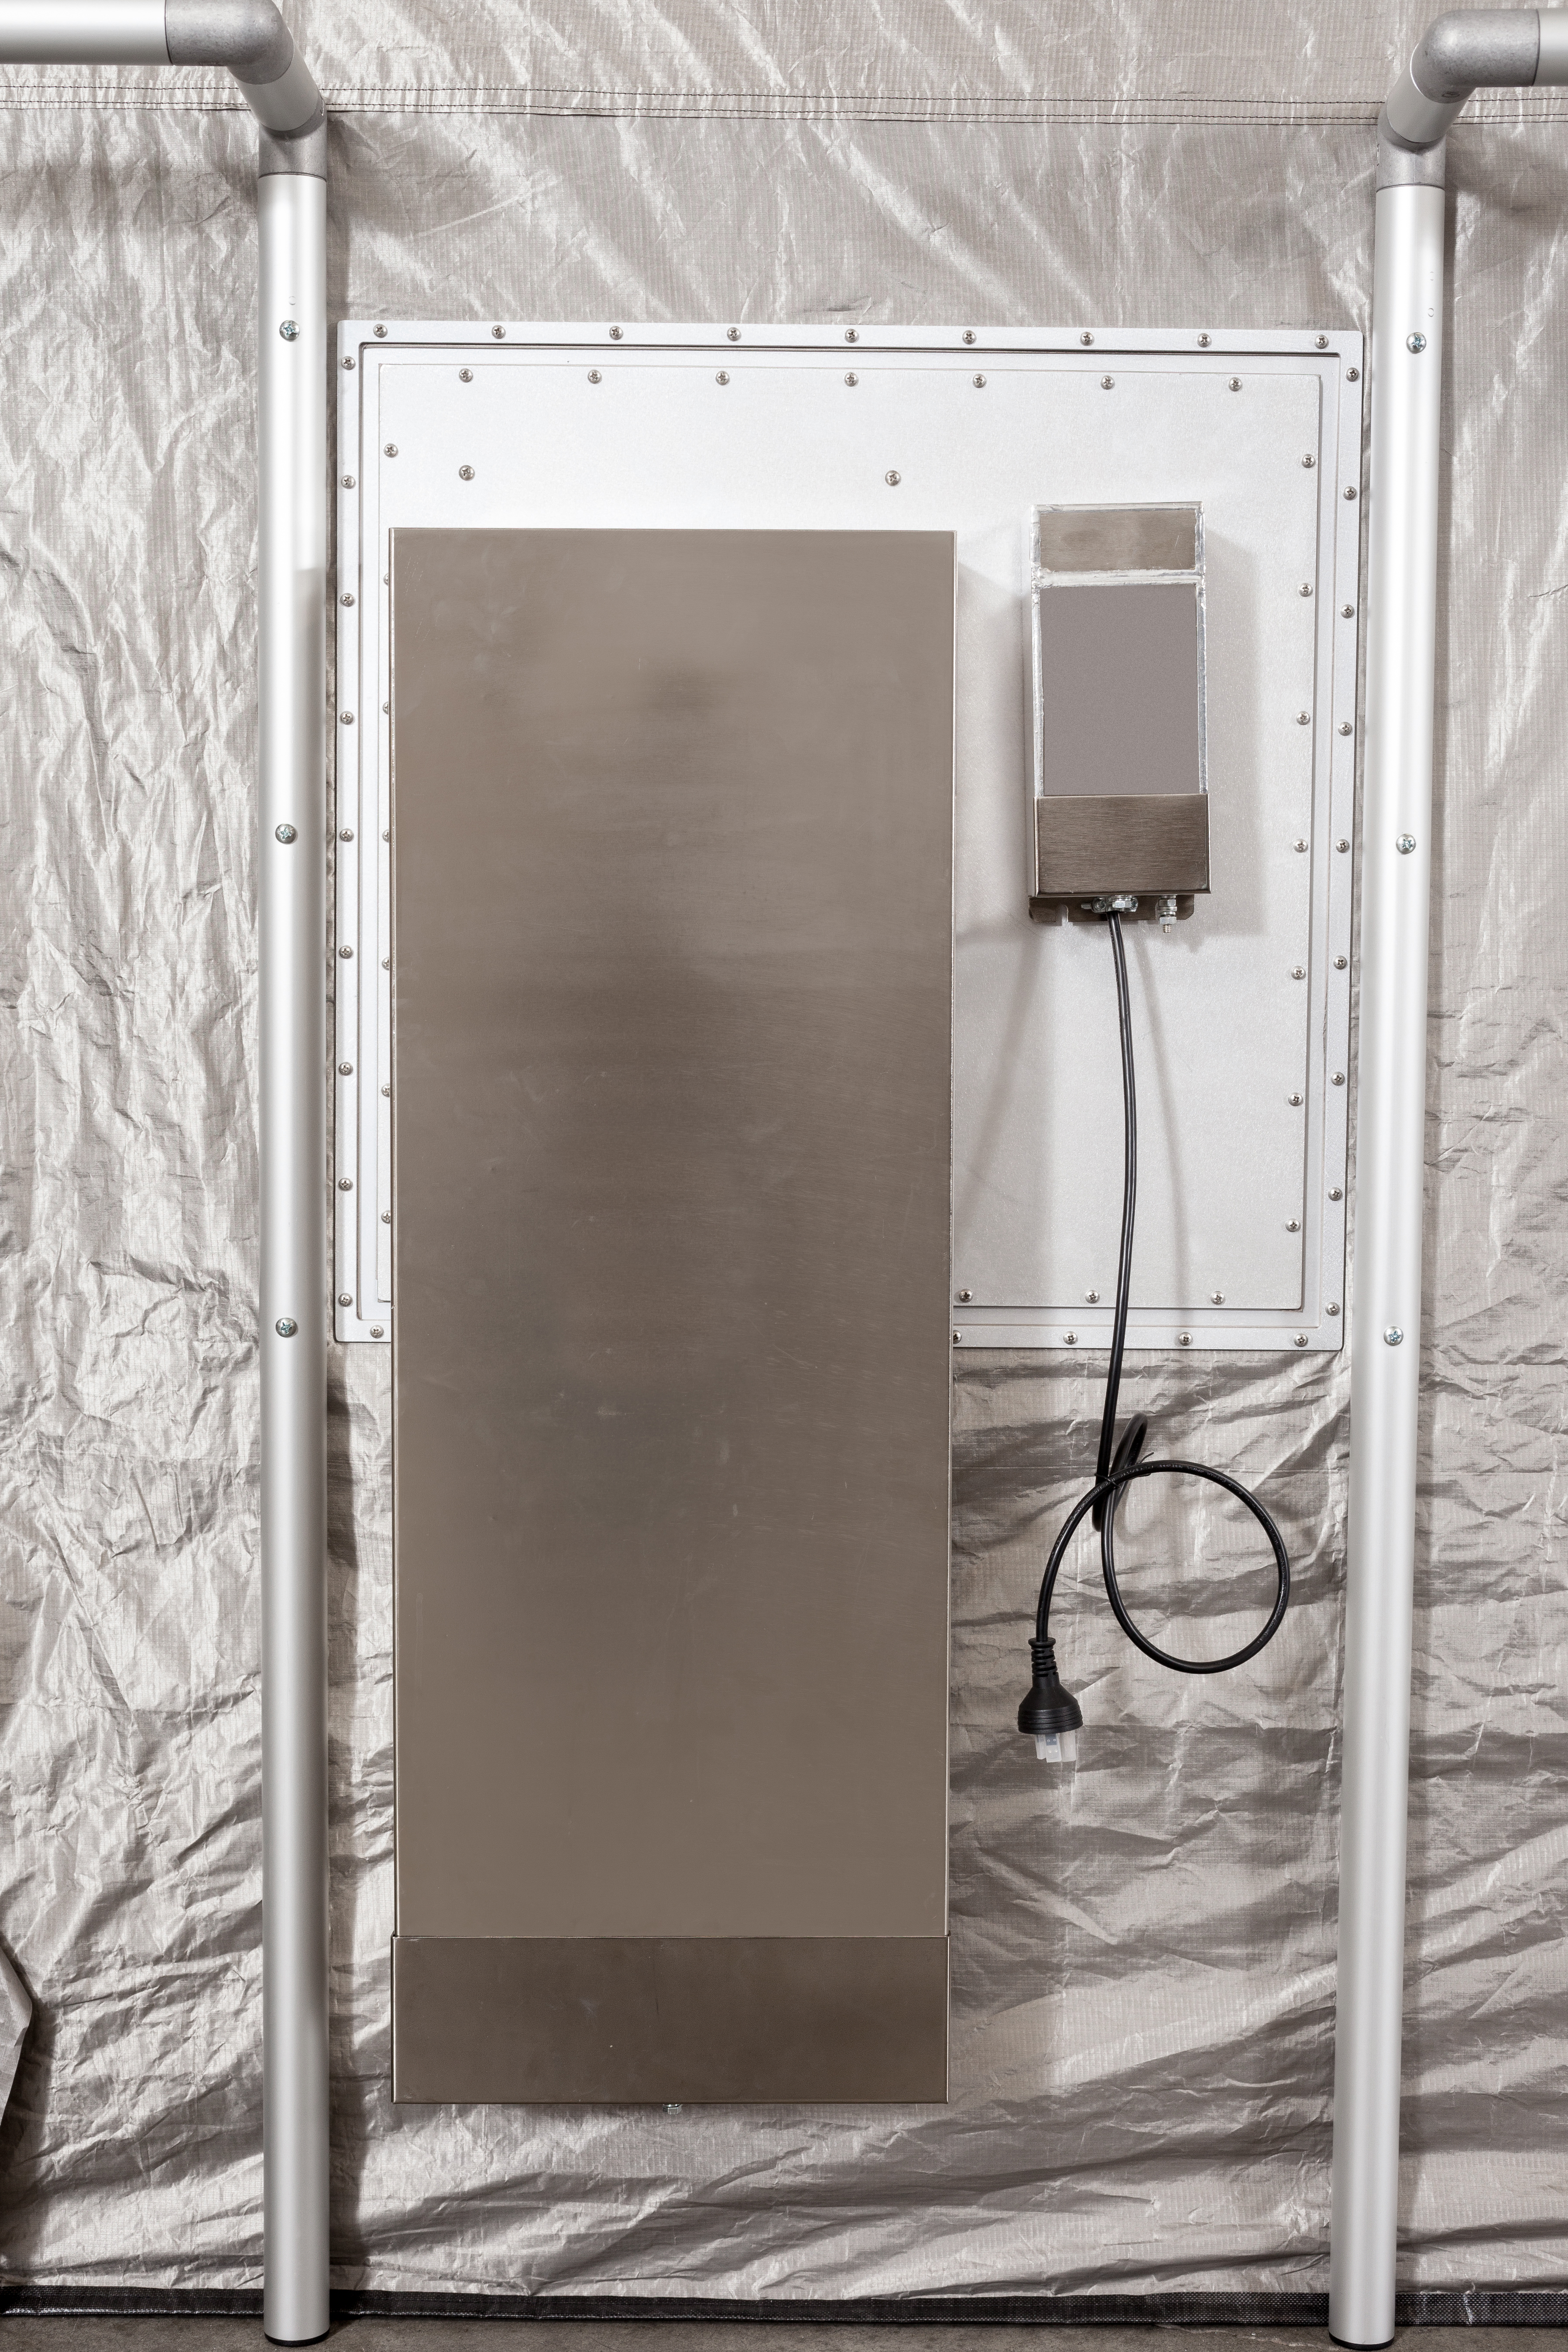 Shielded Room Design Considerations – Part 2 - Select